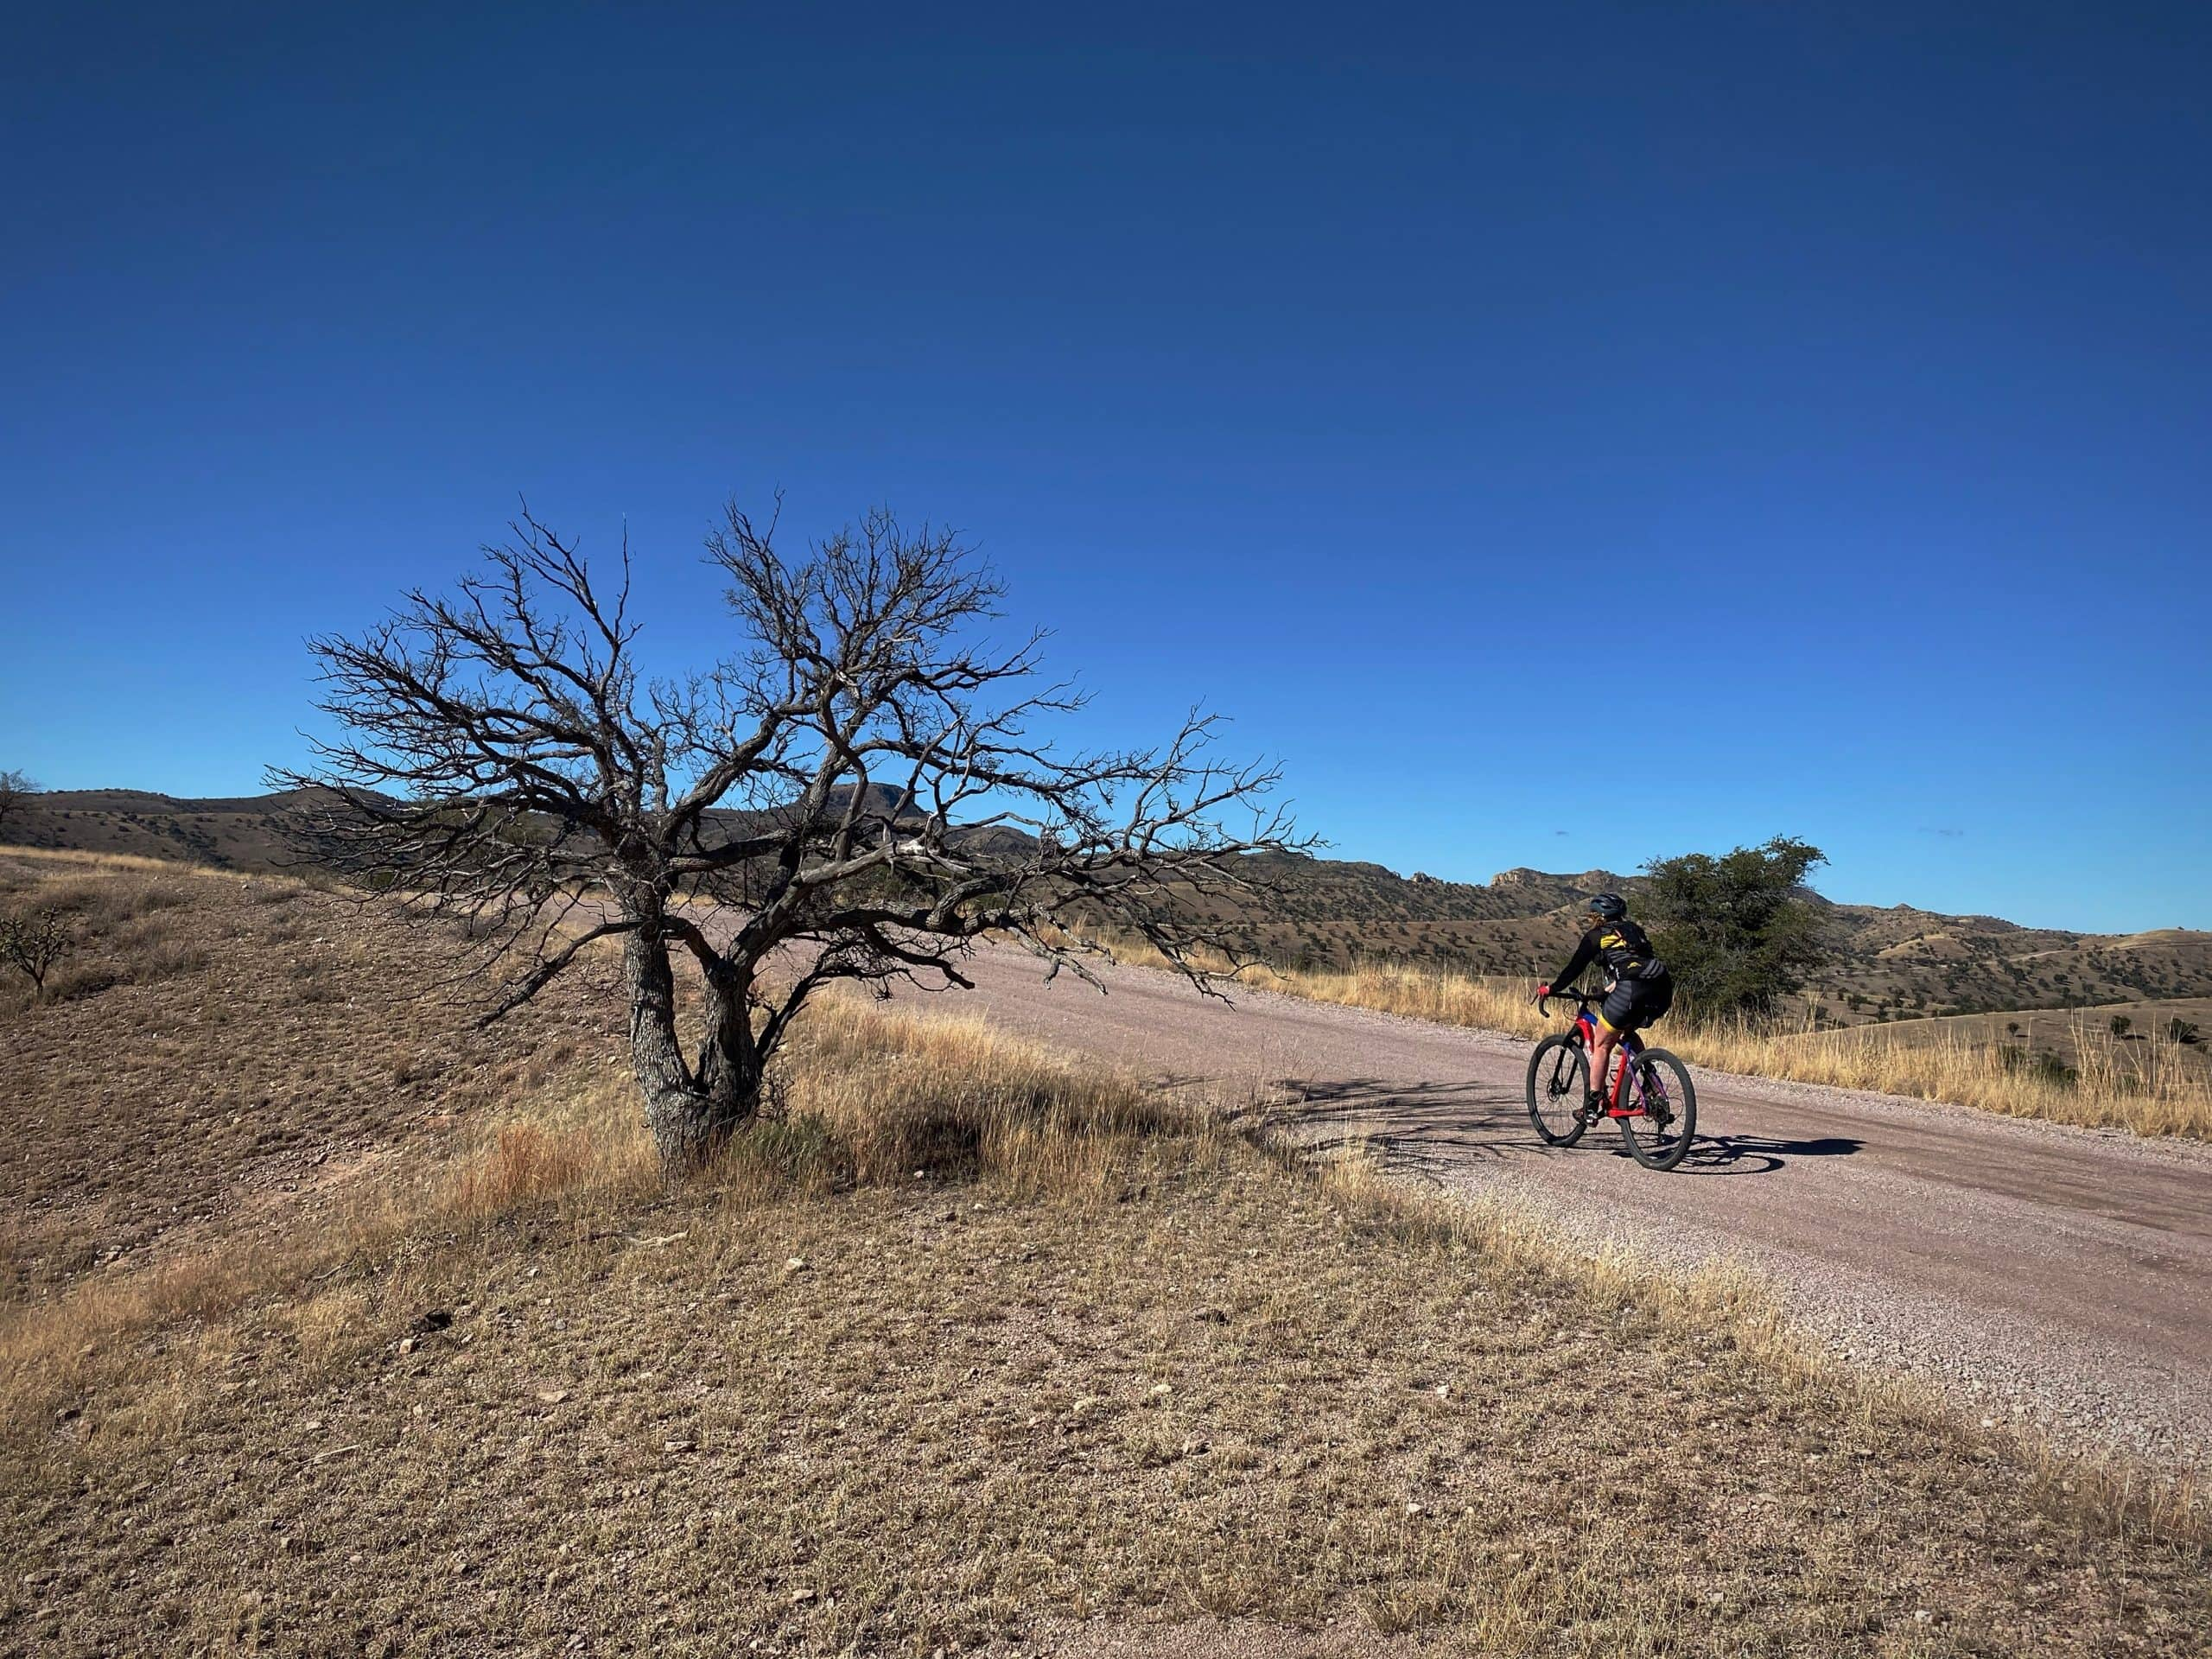 Gravel cyclist on Ruby road riding through the grasslands and thorn-scrub near the Pajarito and Atascosa Mountains.